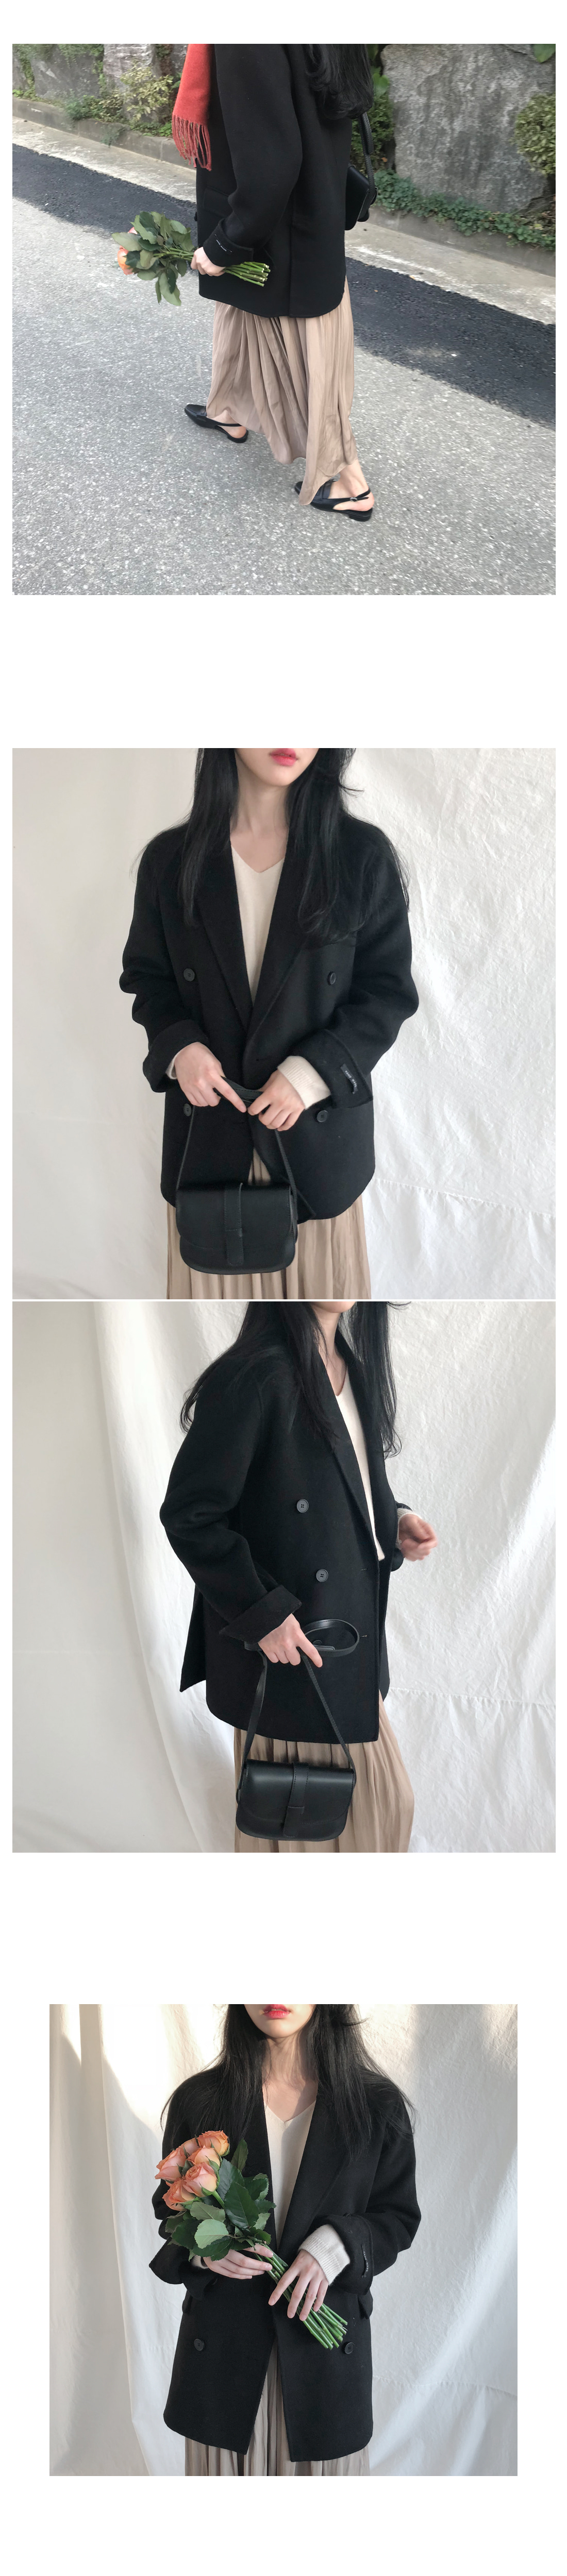 Shutter double handmade coat